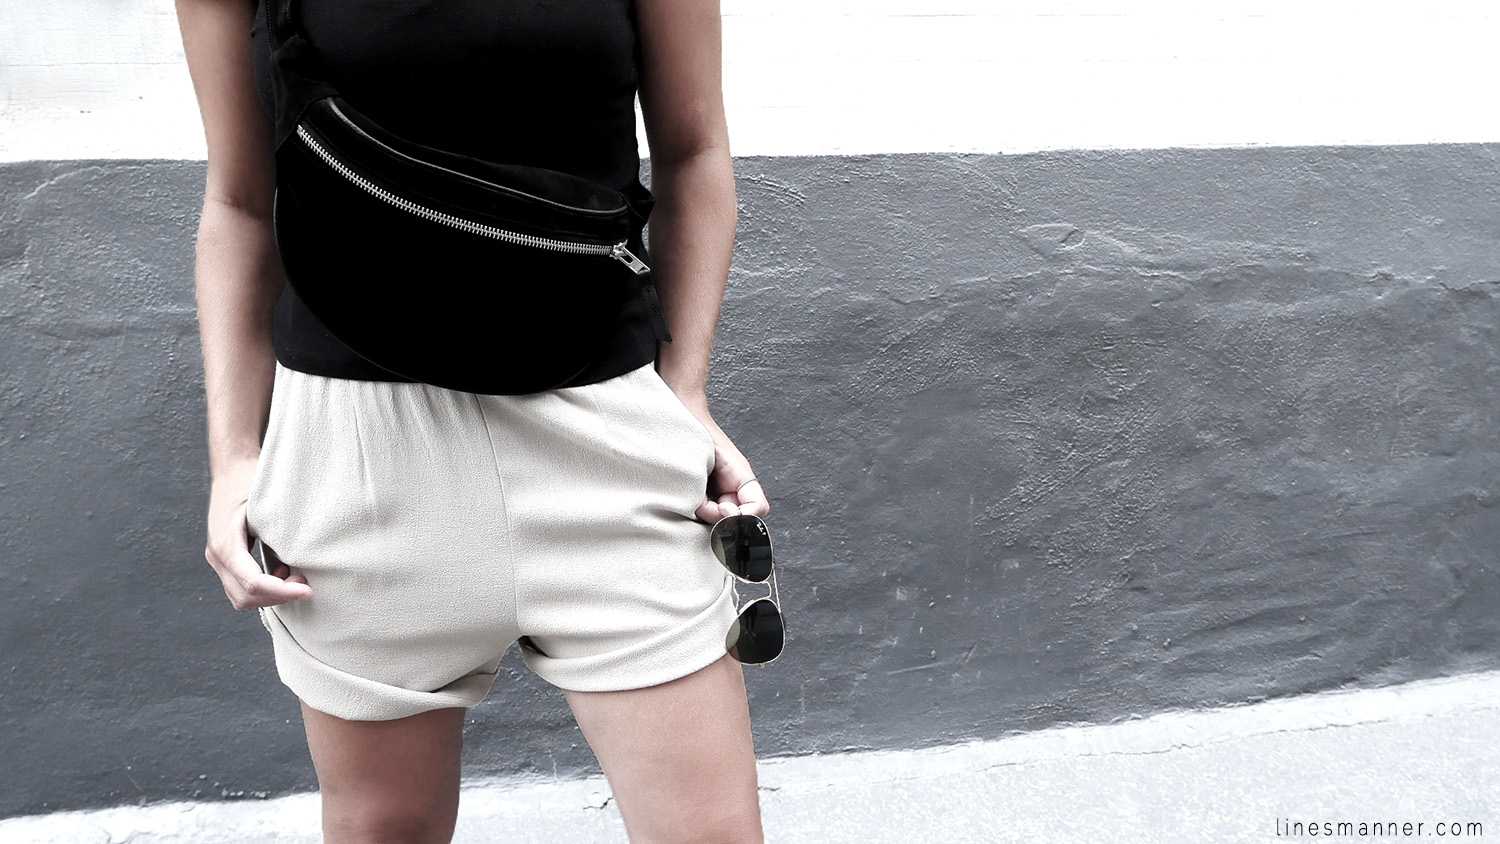 Lines-Manner-Minimalism-Comfy-Bumbag-Aesthetic-Effortless_Chic-Structured-Simplicity-Clean-Relaxed-Trend-5